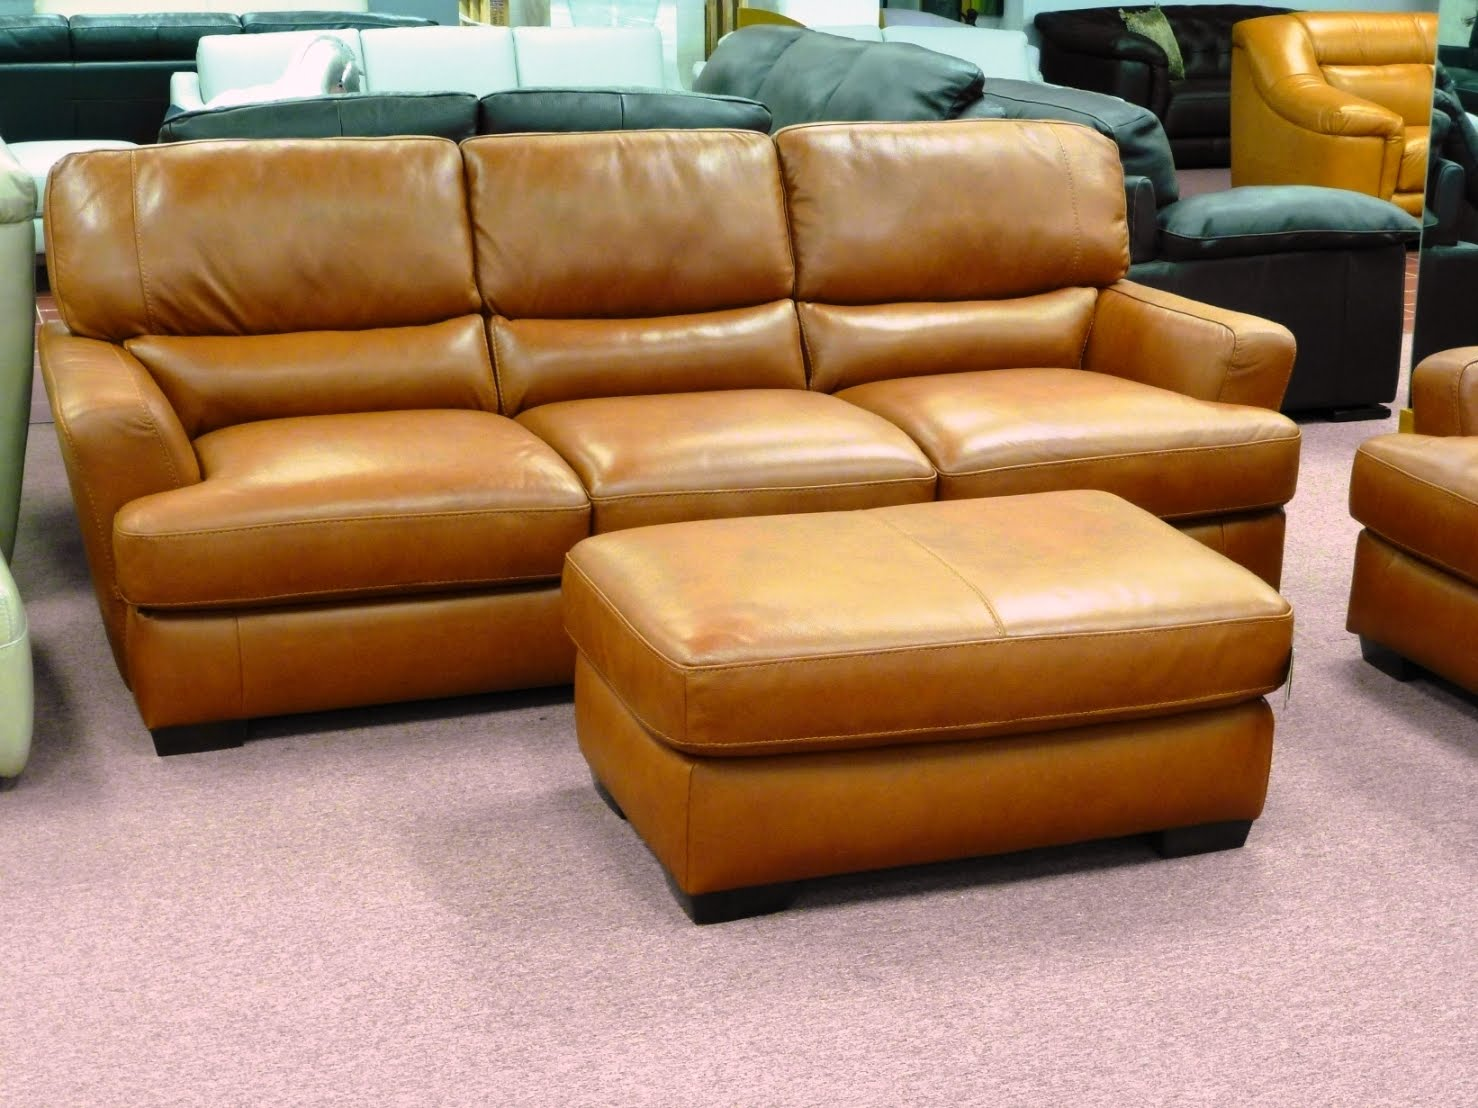 Orange Leather Sofas By Natuzzi Editions